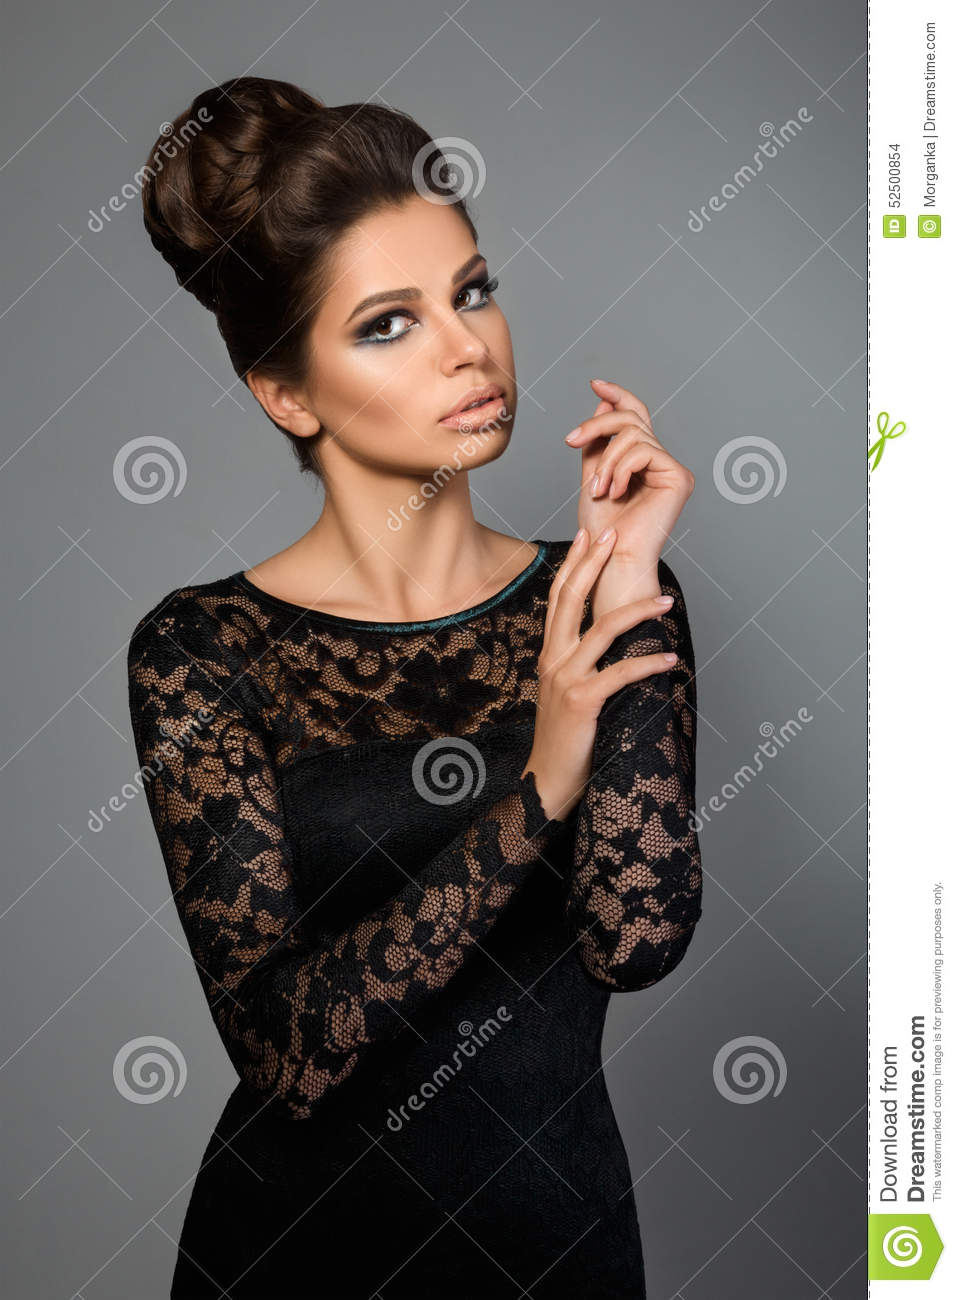 Black dress hairstyle - Portrait Of Young Beautiful Woman Wearing Black Dress Stock Photo